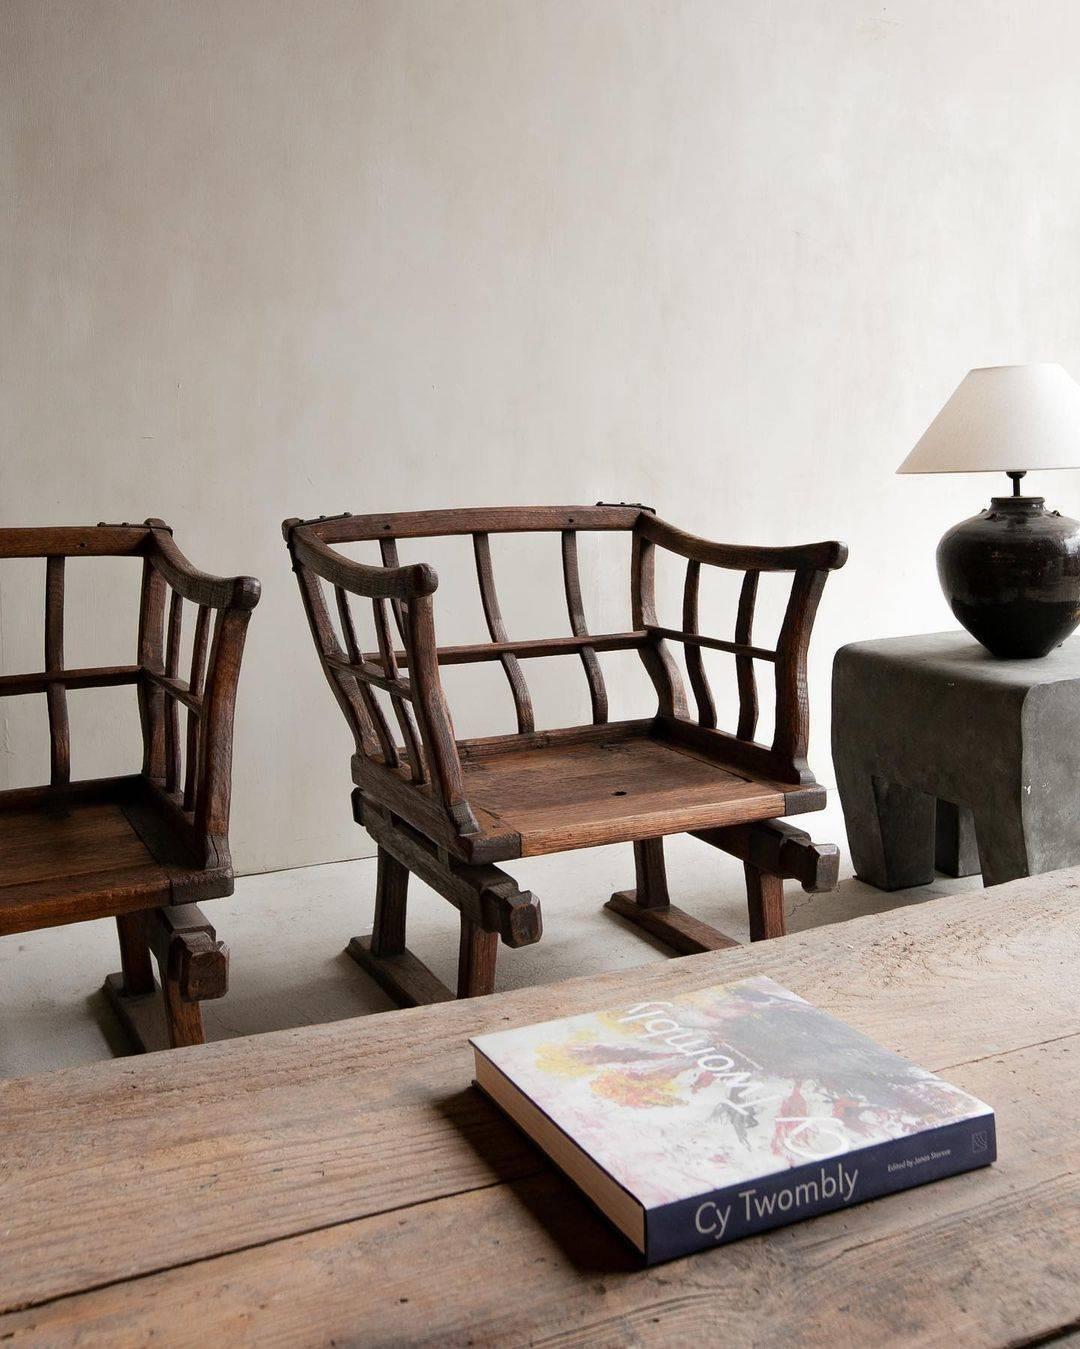 A pair of primitive wood chairs.